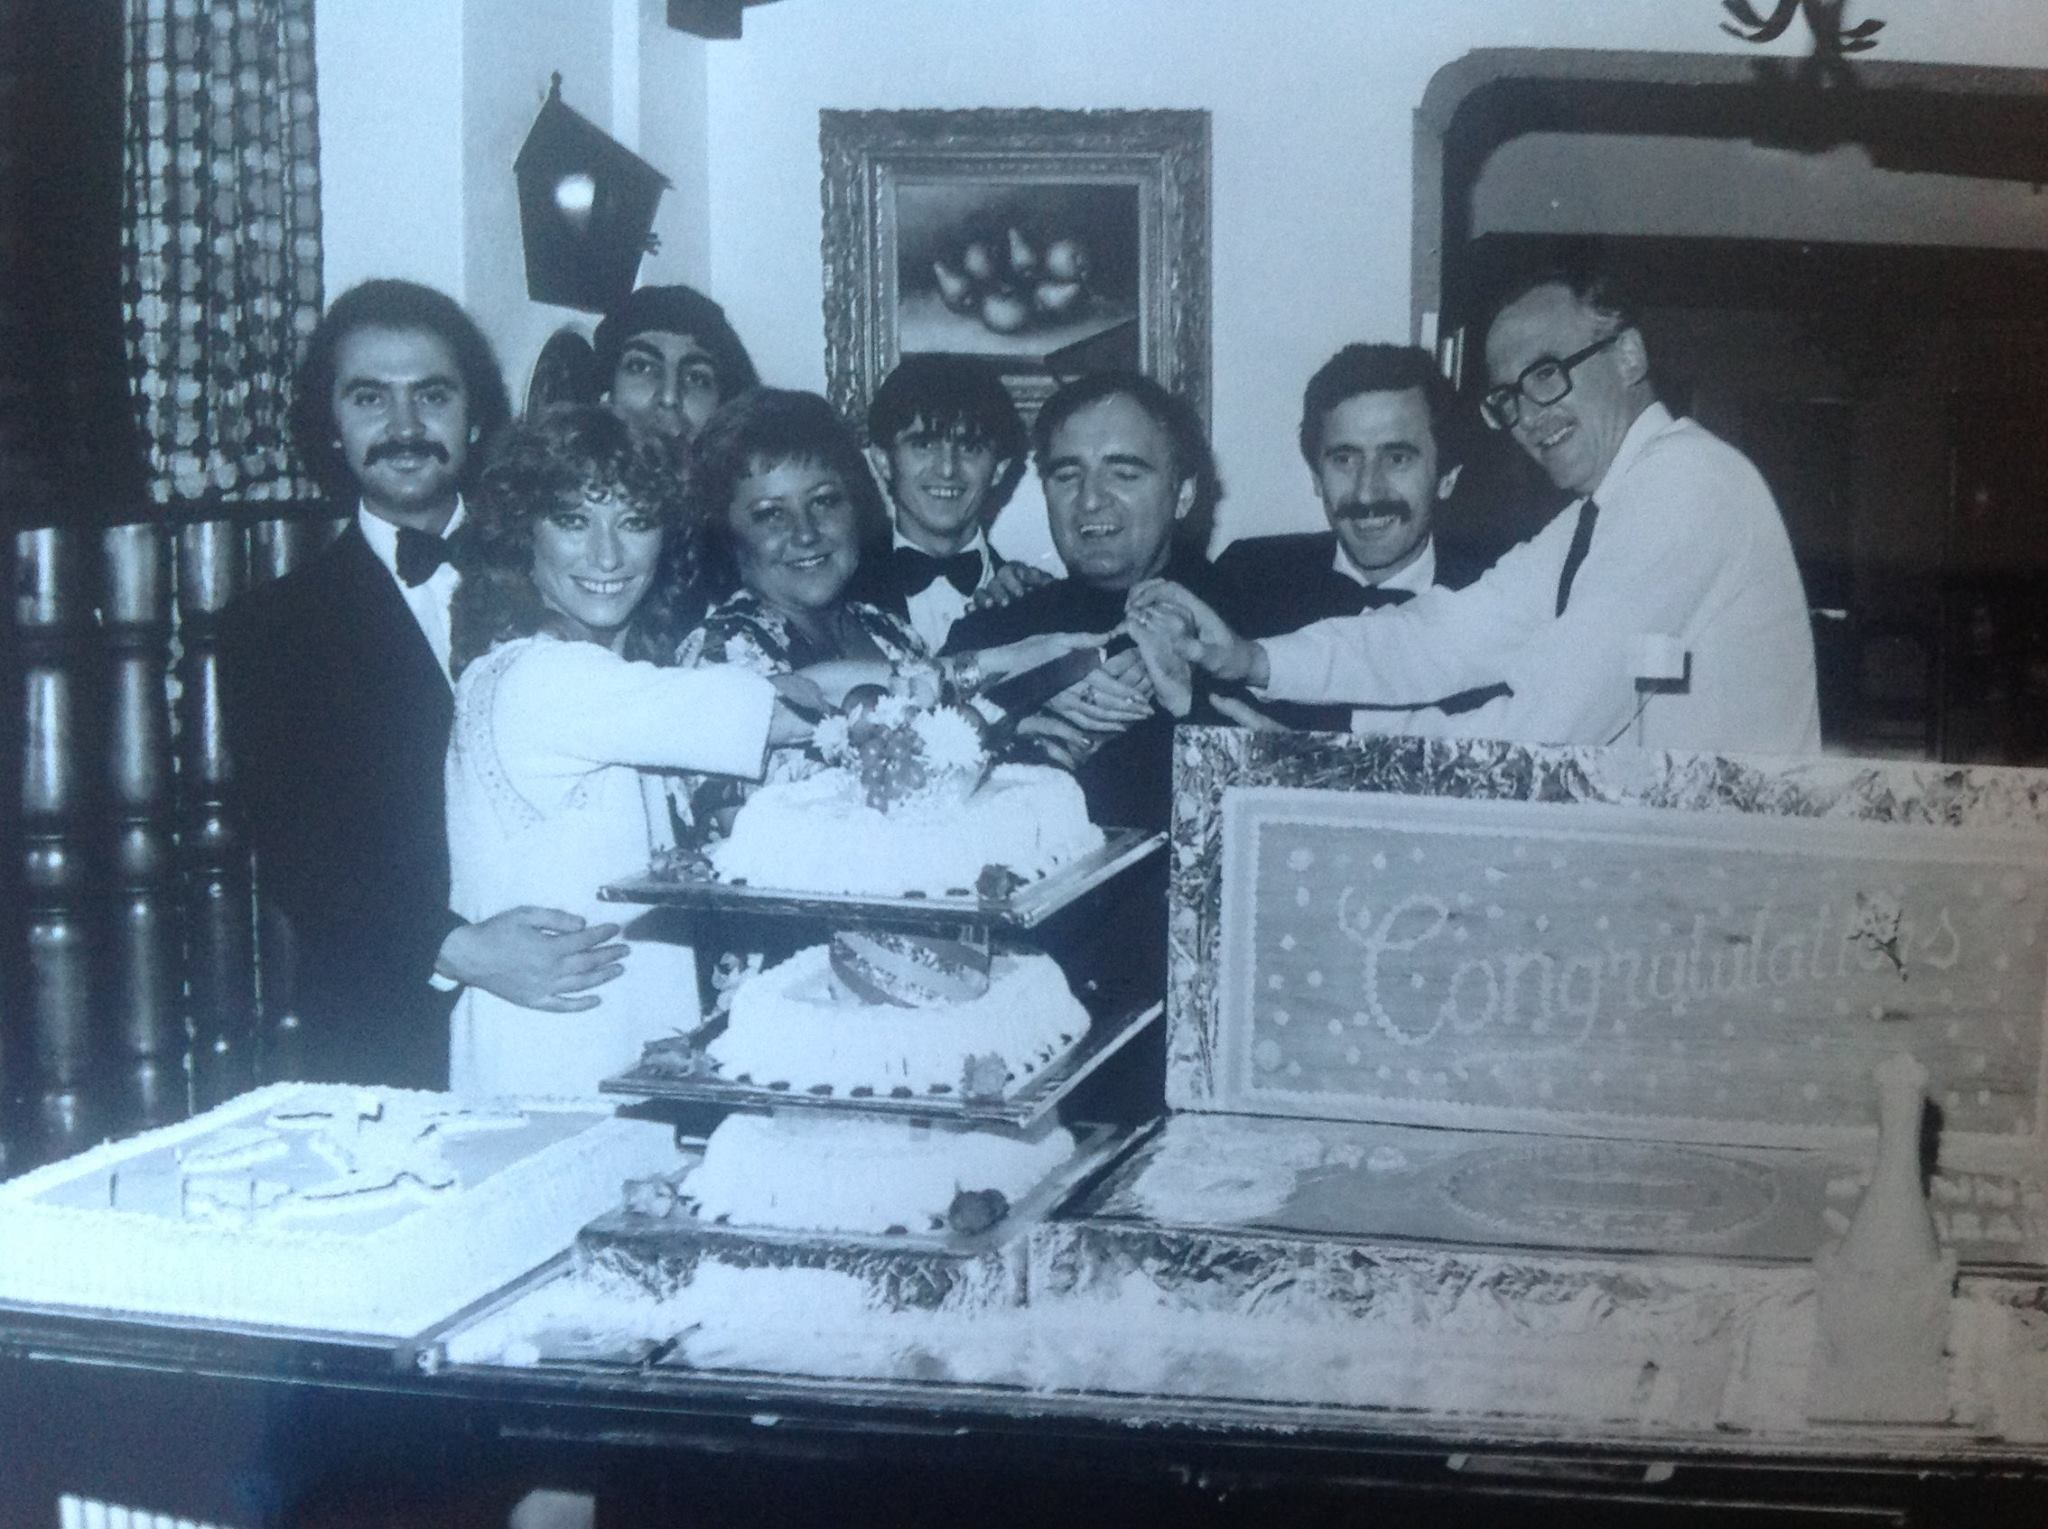 Staff at Casa Italia restaurant on Lord Street in Southport celebrate the venue's third birthday party in September, 1981. The Grossi family, which owned the restaurant for many years, were joined by cartoonist Bill Tidy (right) to cut the cake.